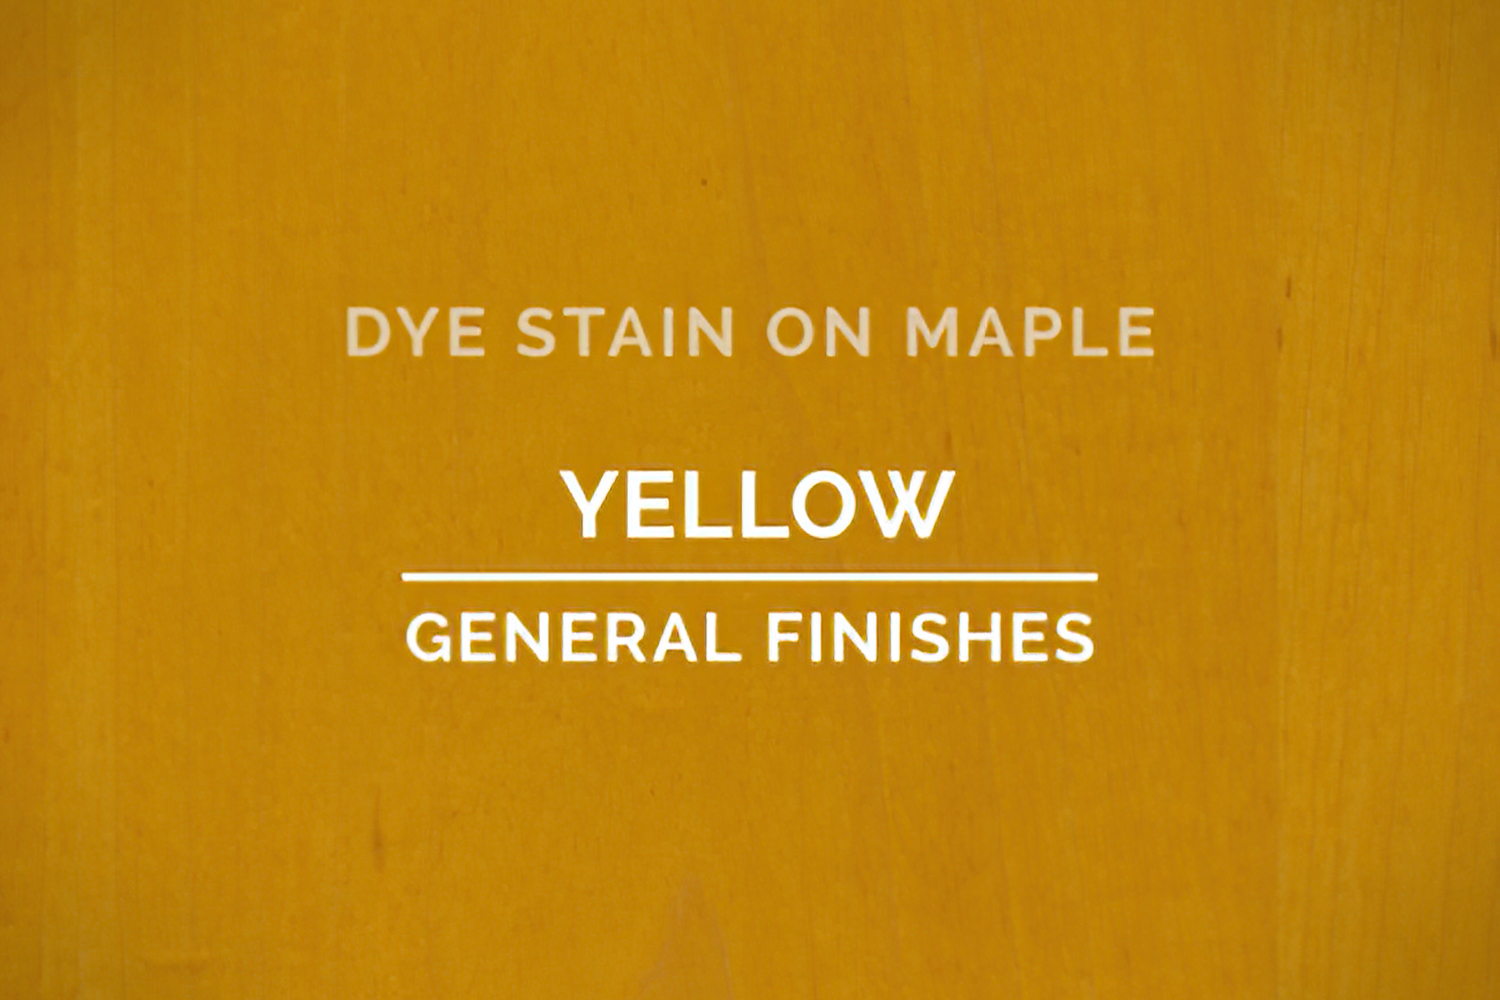 General Finishes Yellow Dye Pint